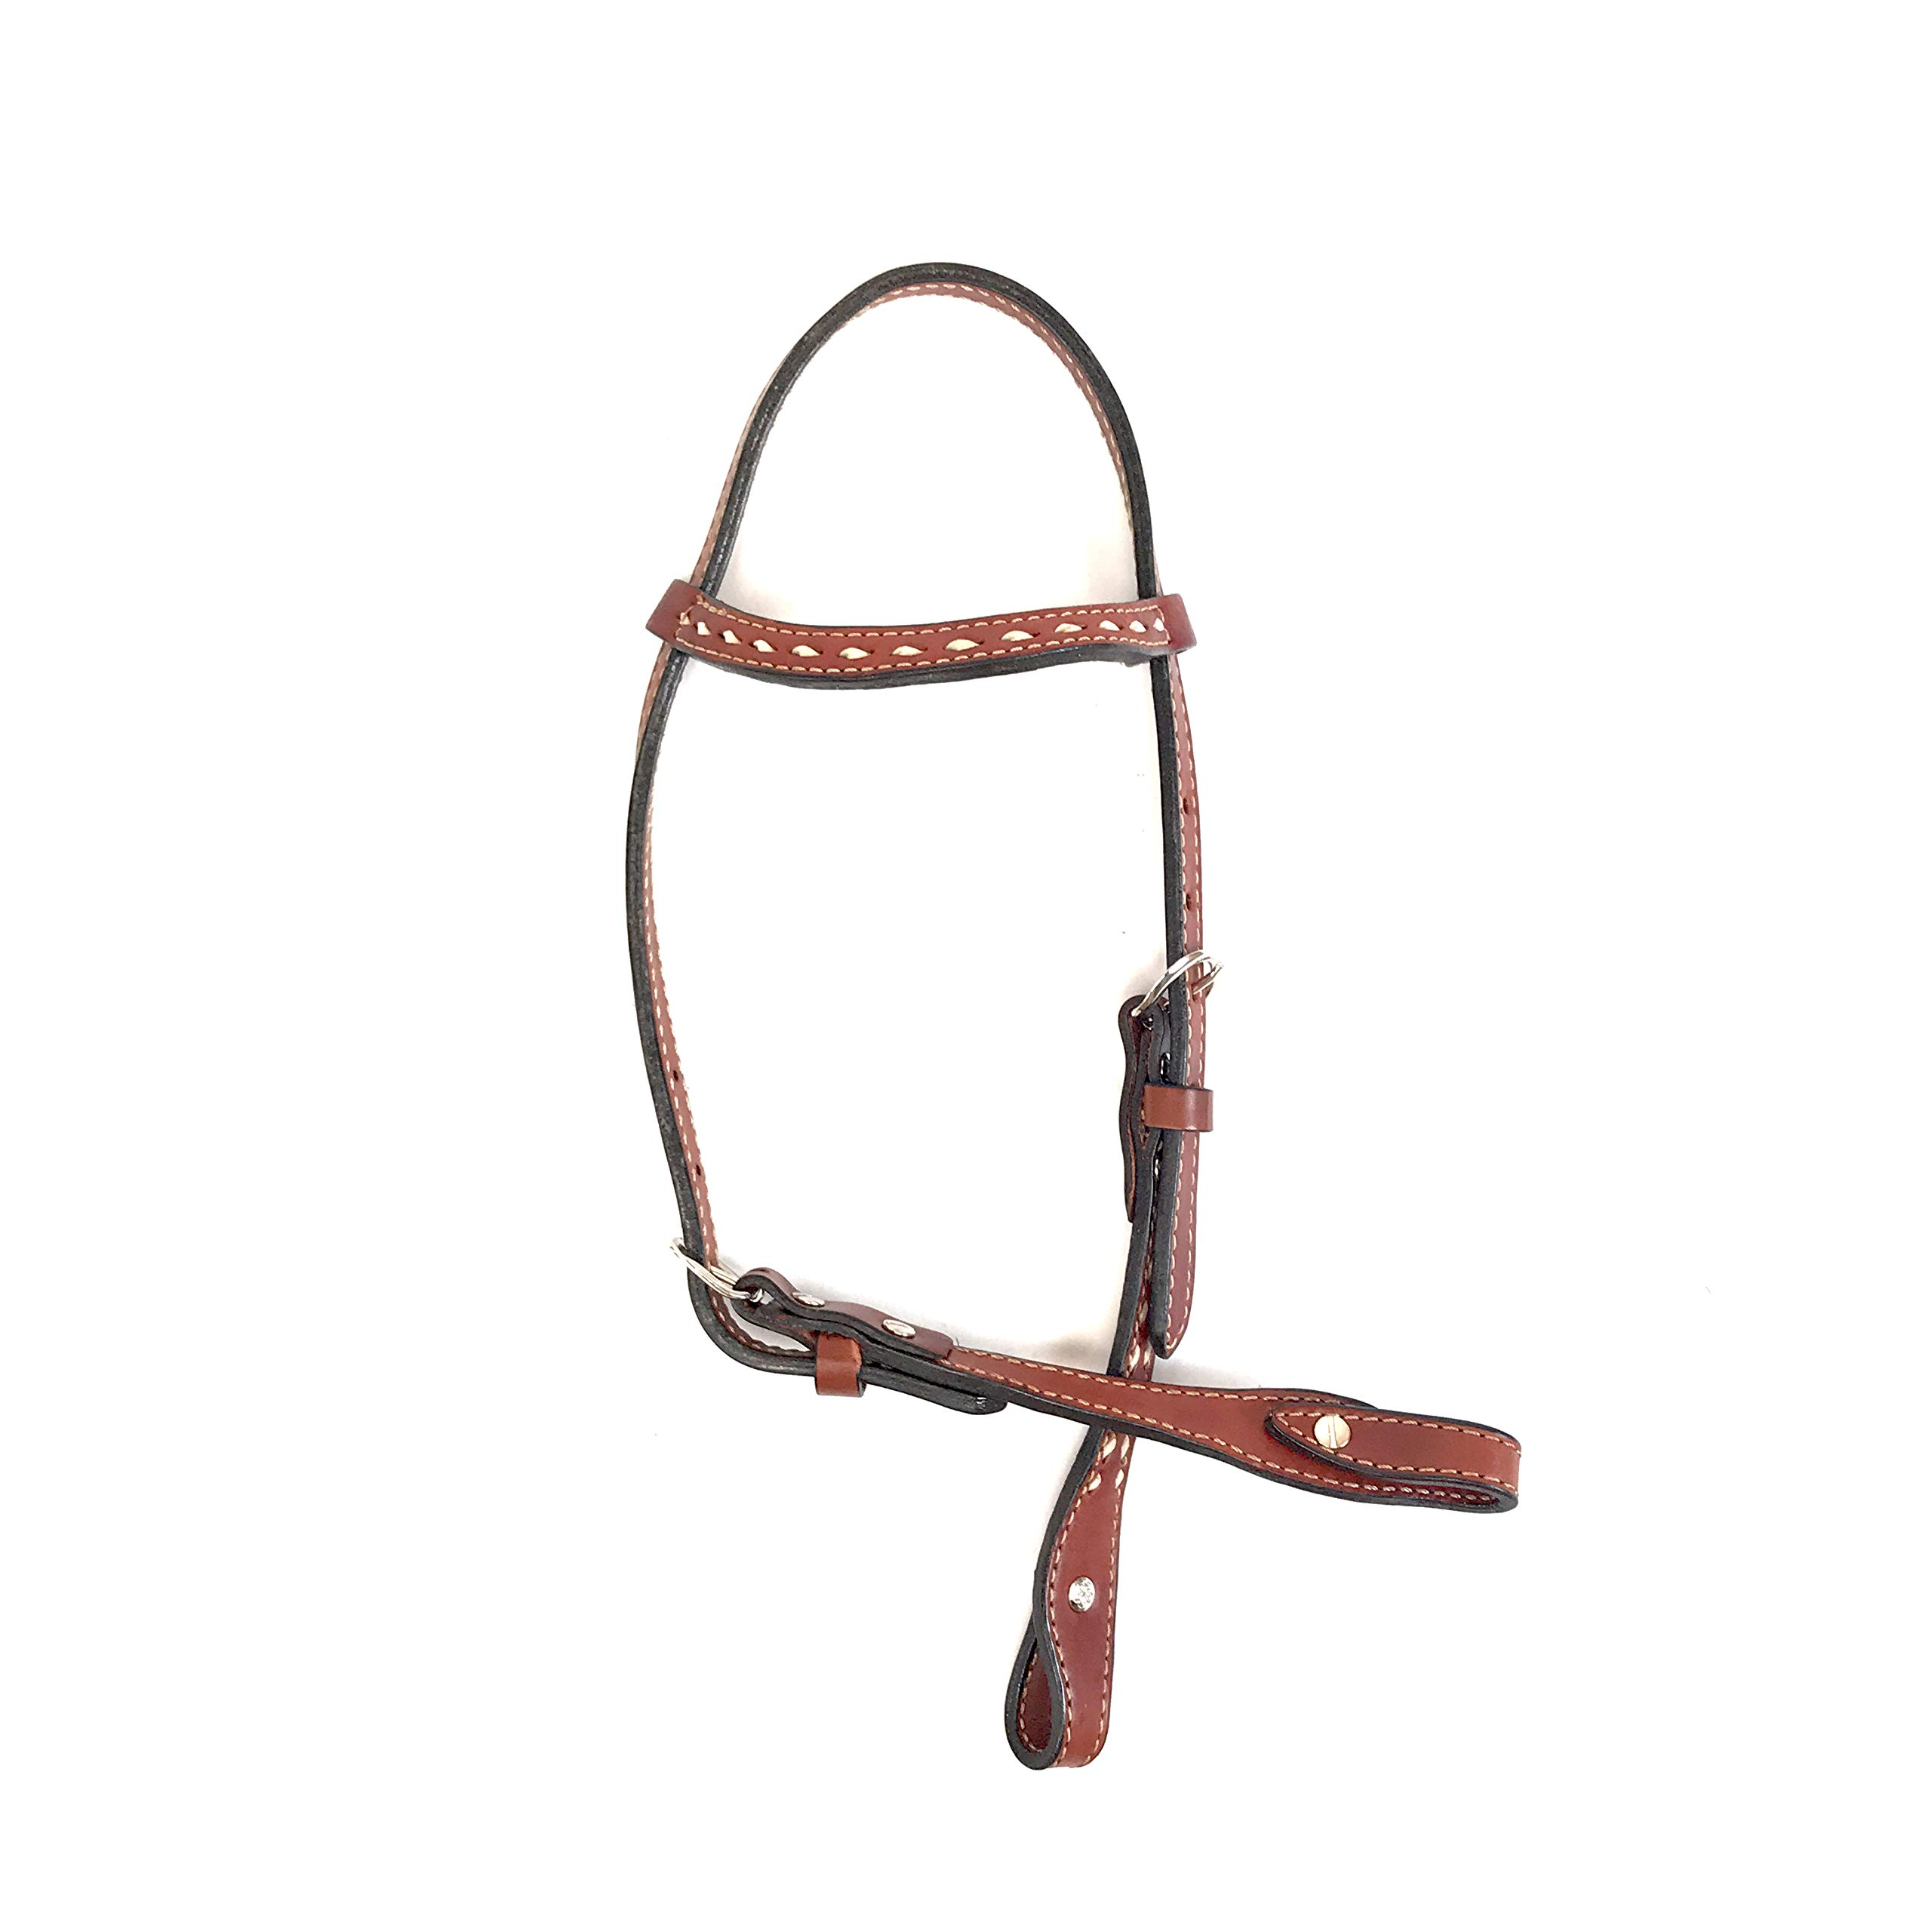 Alamo Saddlery LLC Rancher Supply- 'One Eared Headstall w/Toast Leather'